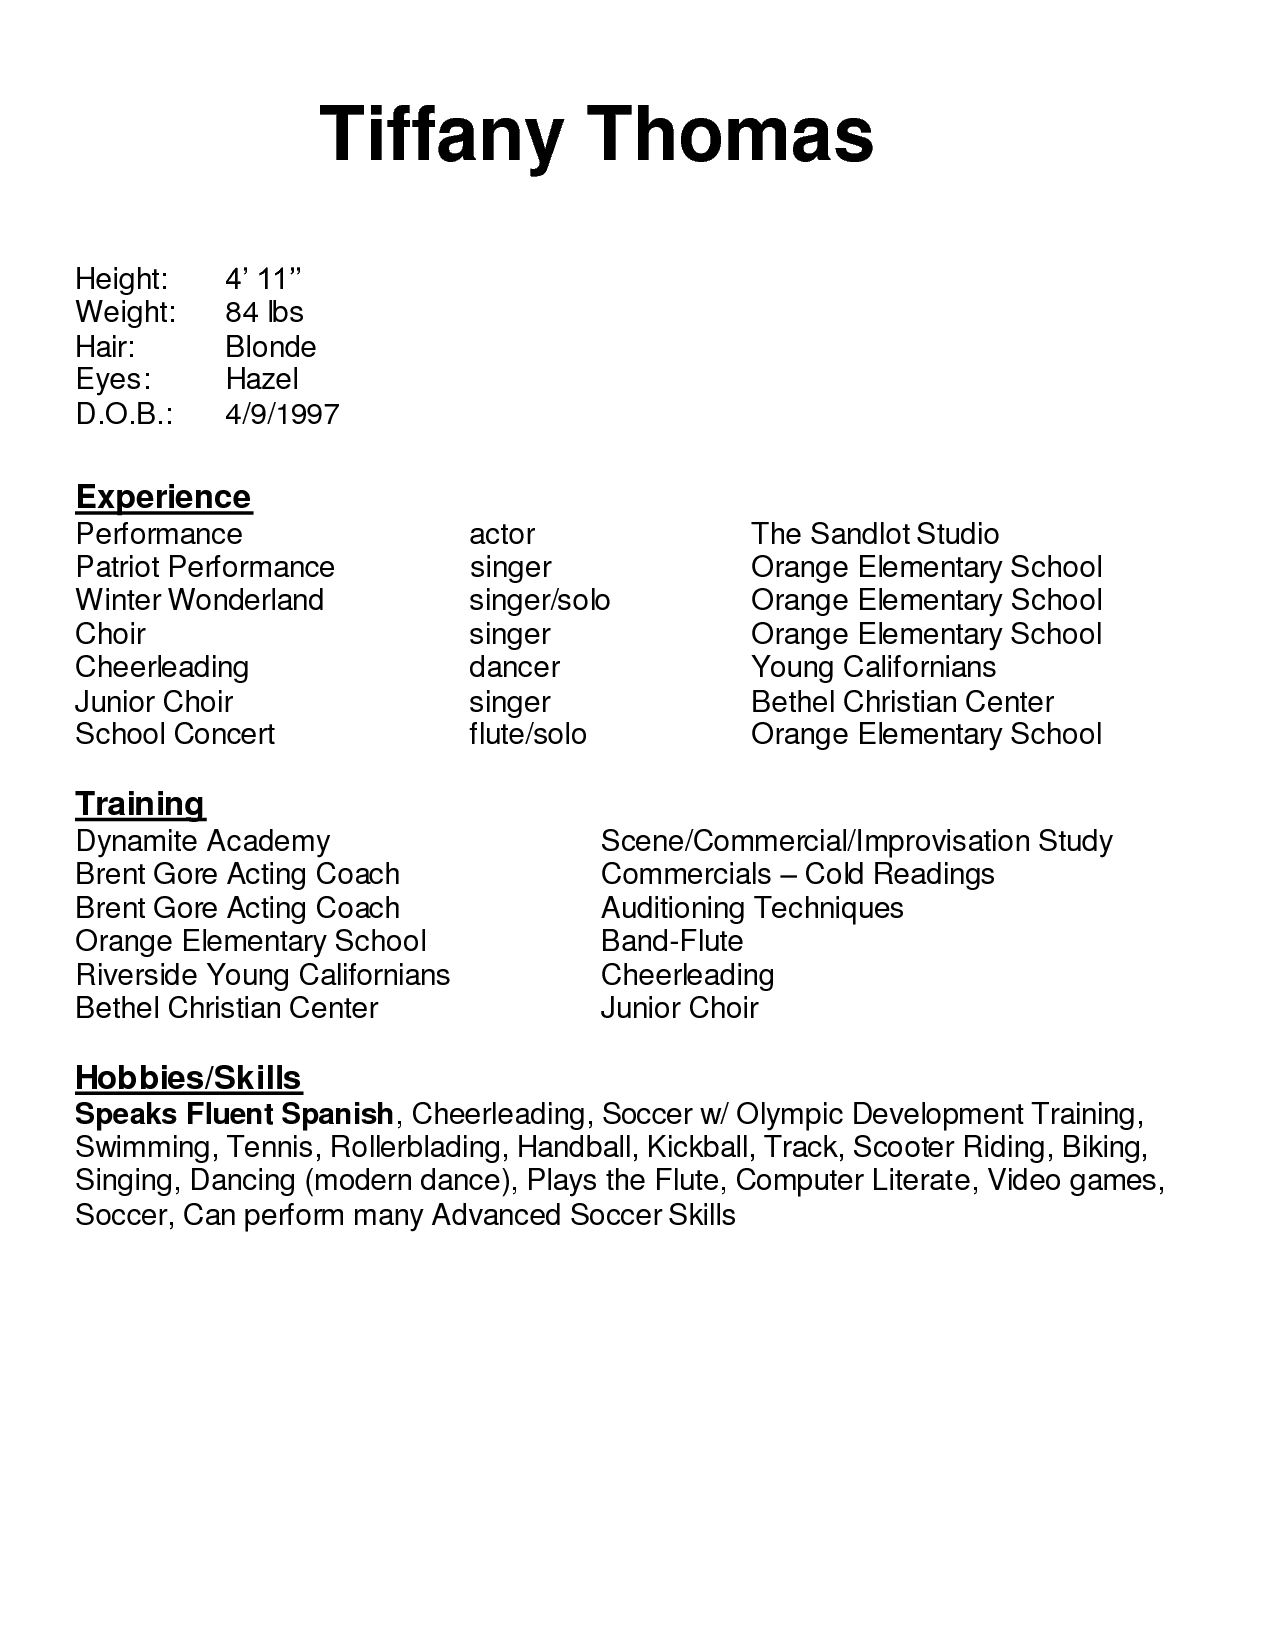 Free Resume Templates For Youth 3 Free Resume Templates